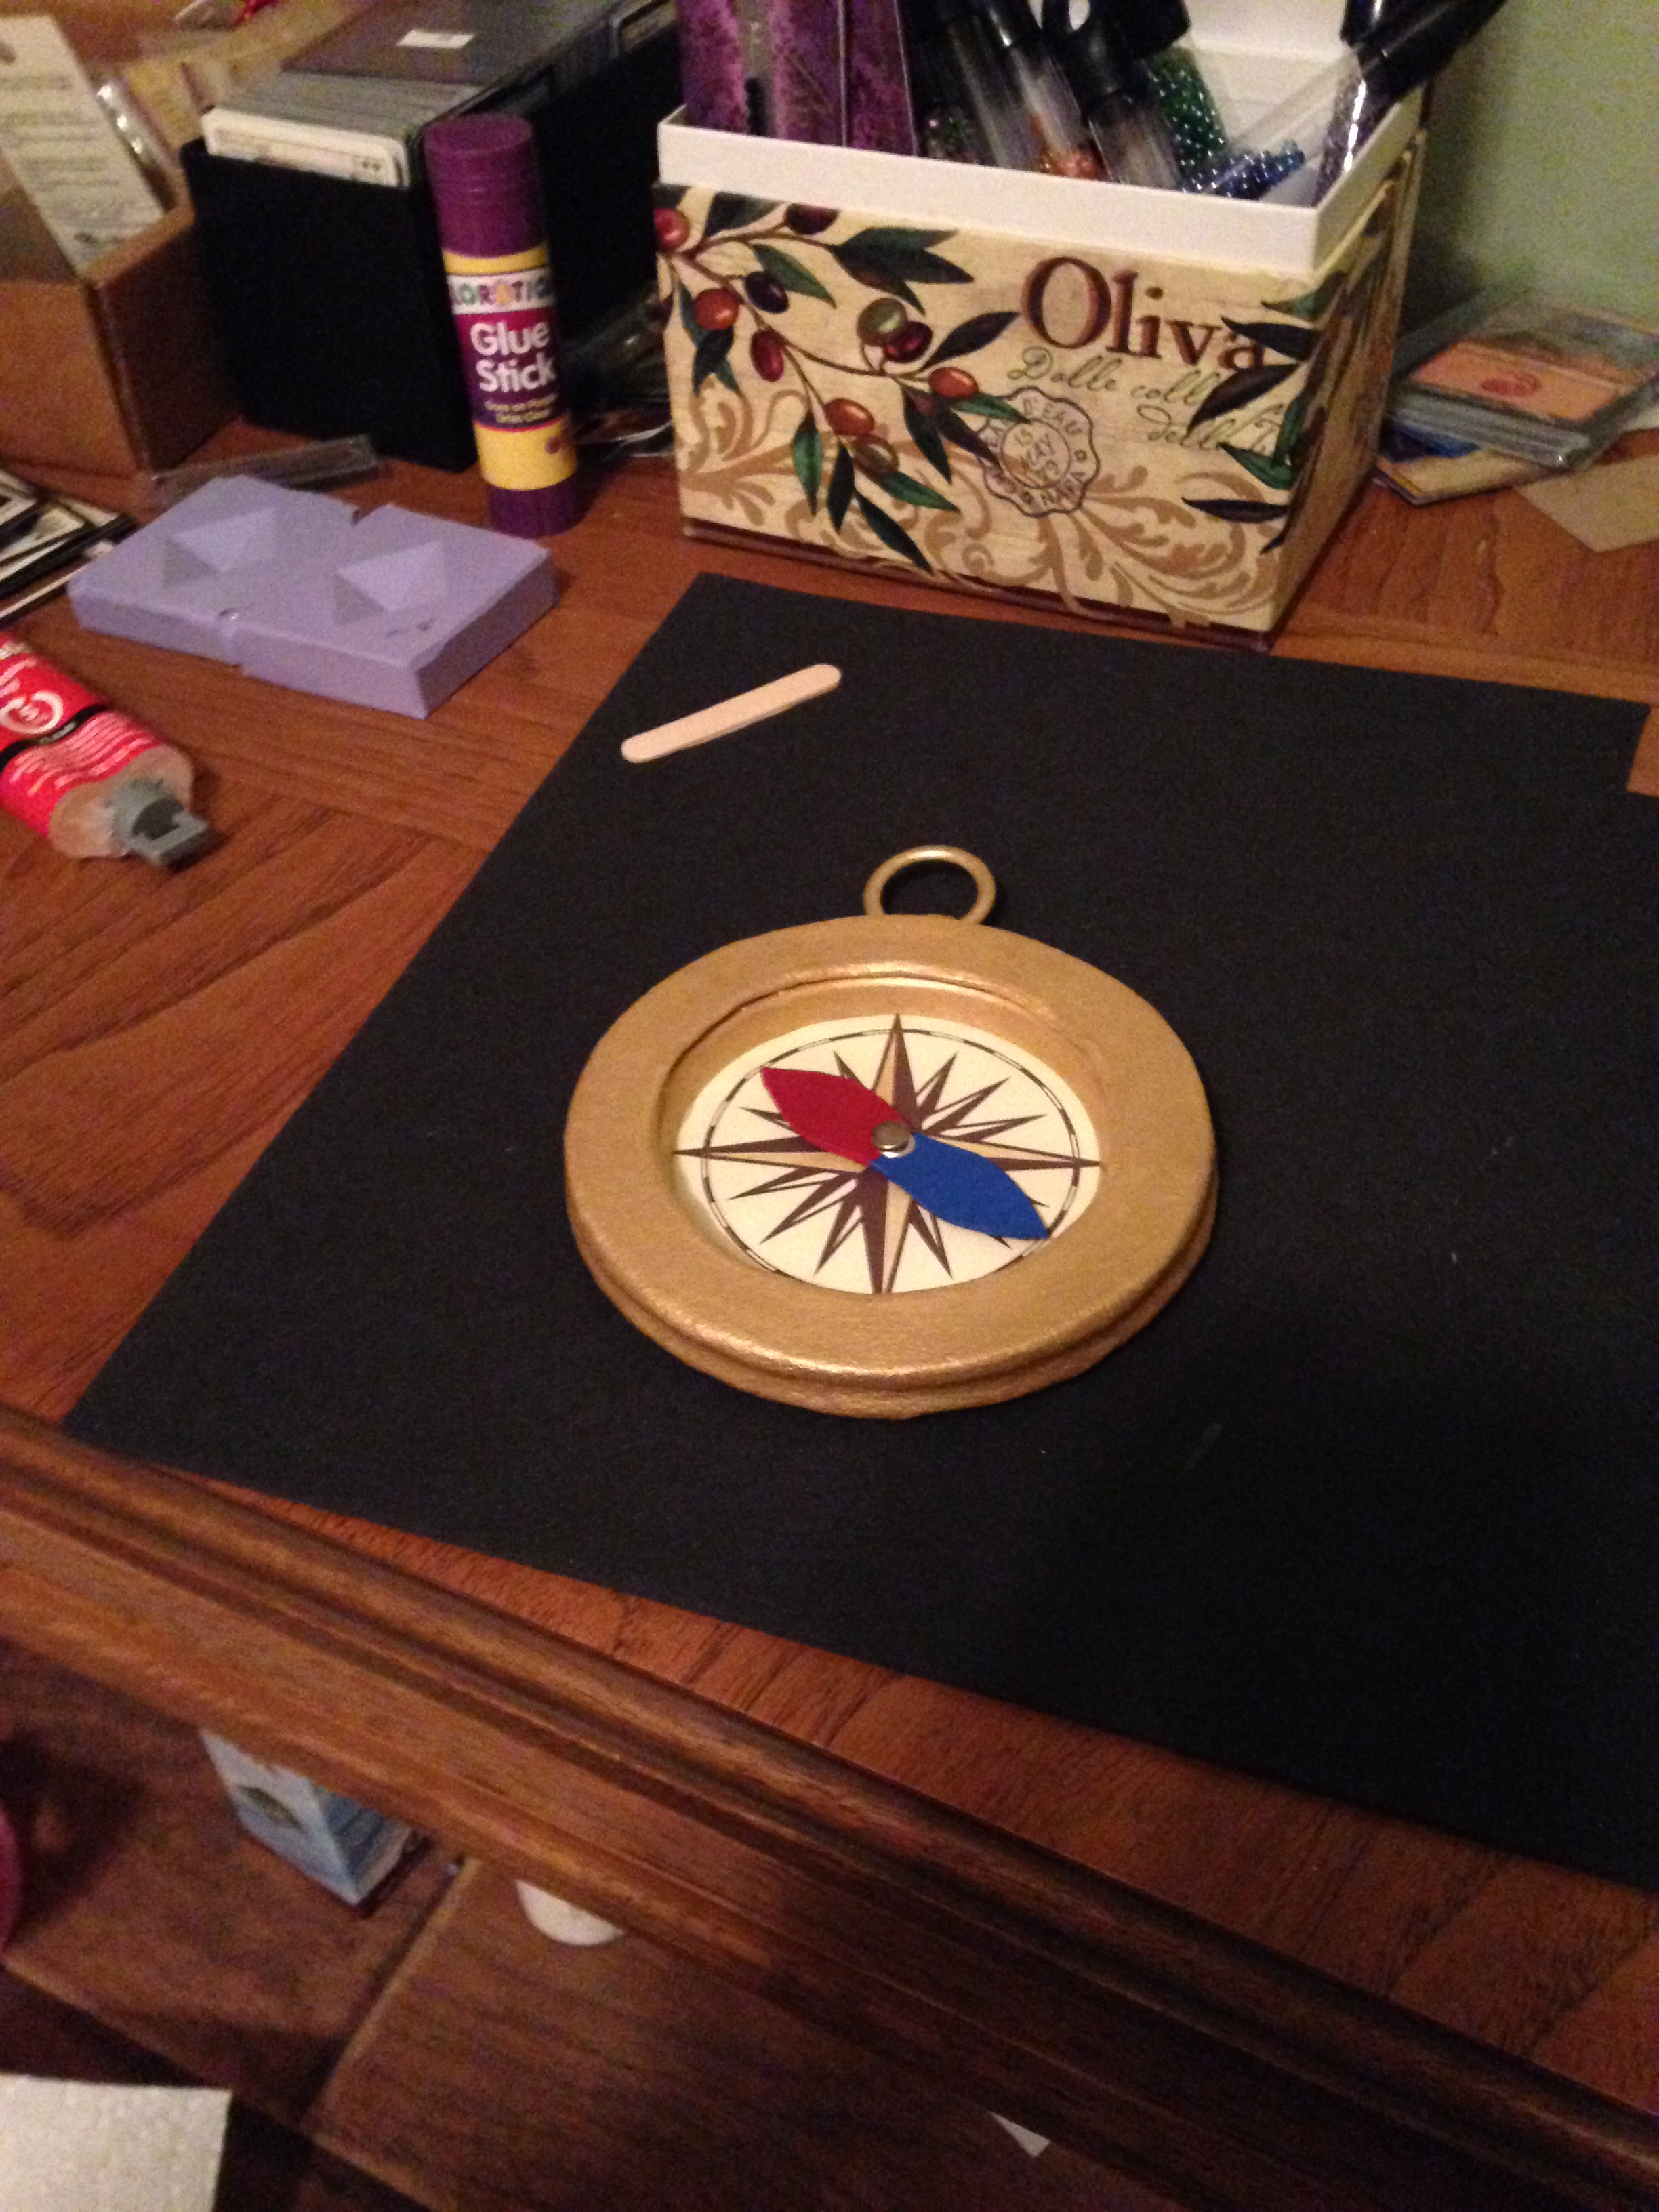 The compass is totally done minus the gold chord that it hangs from. And the thing in the middle actually spins!!